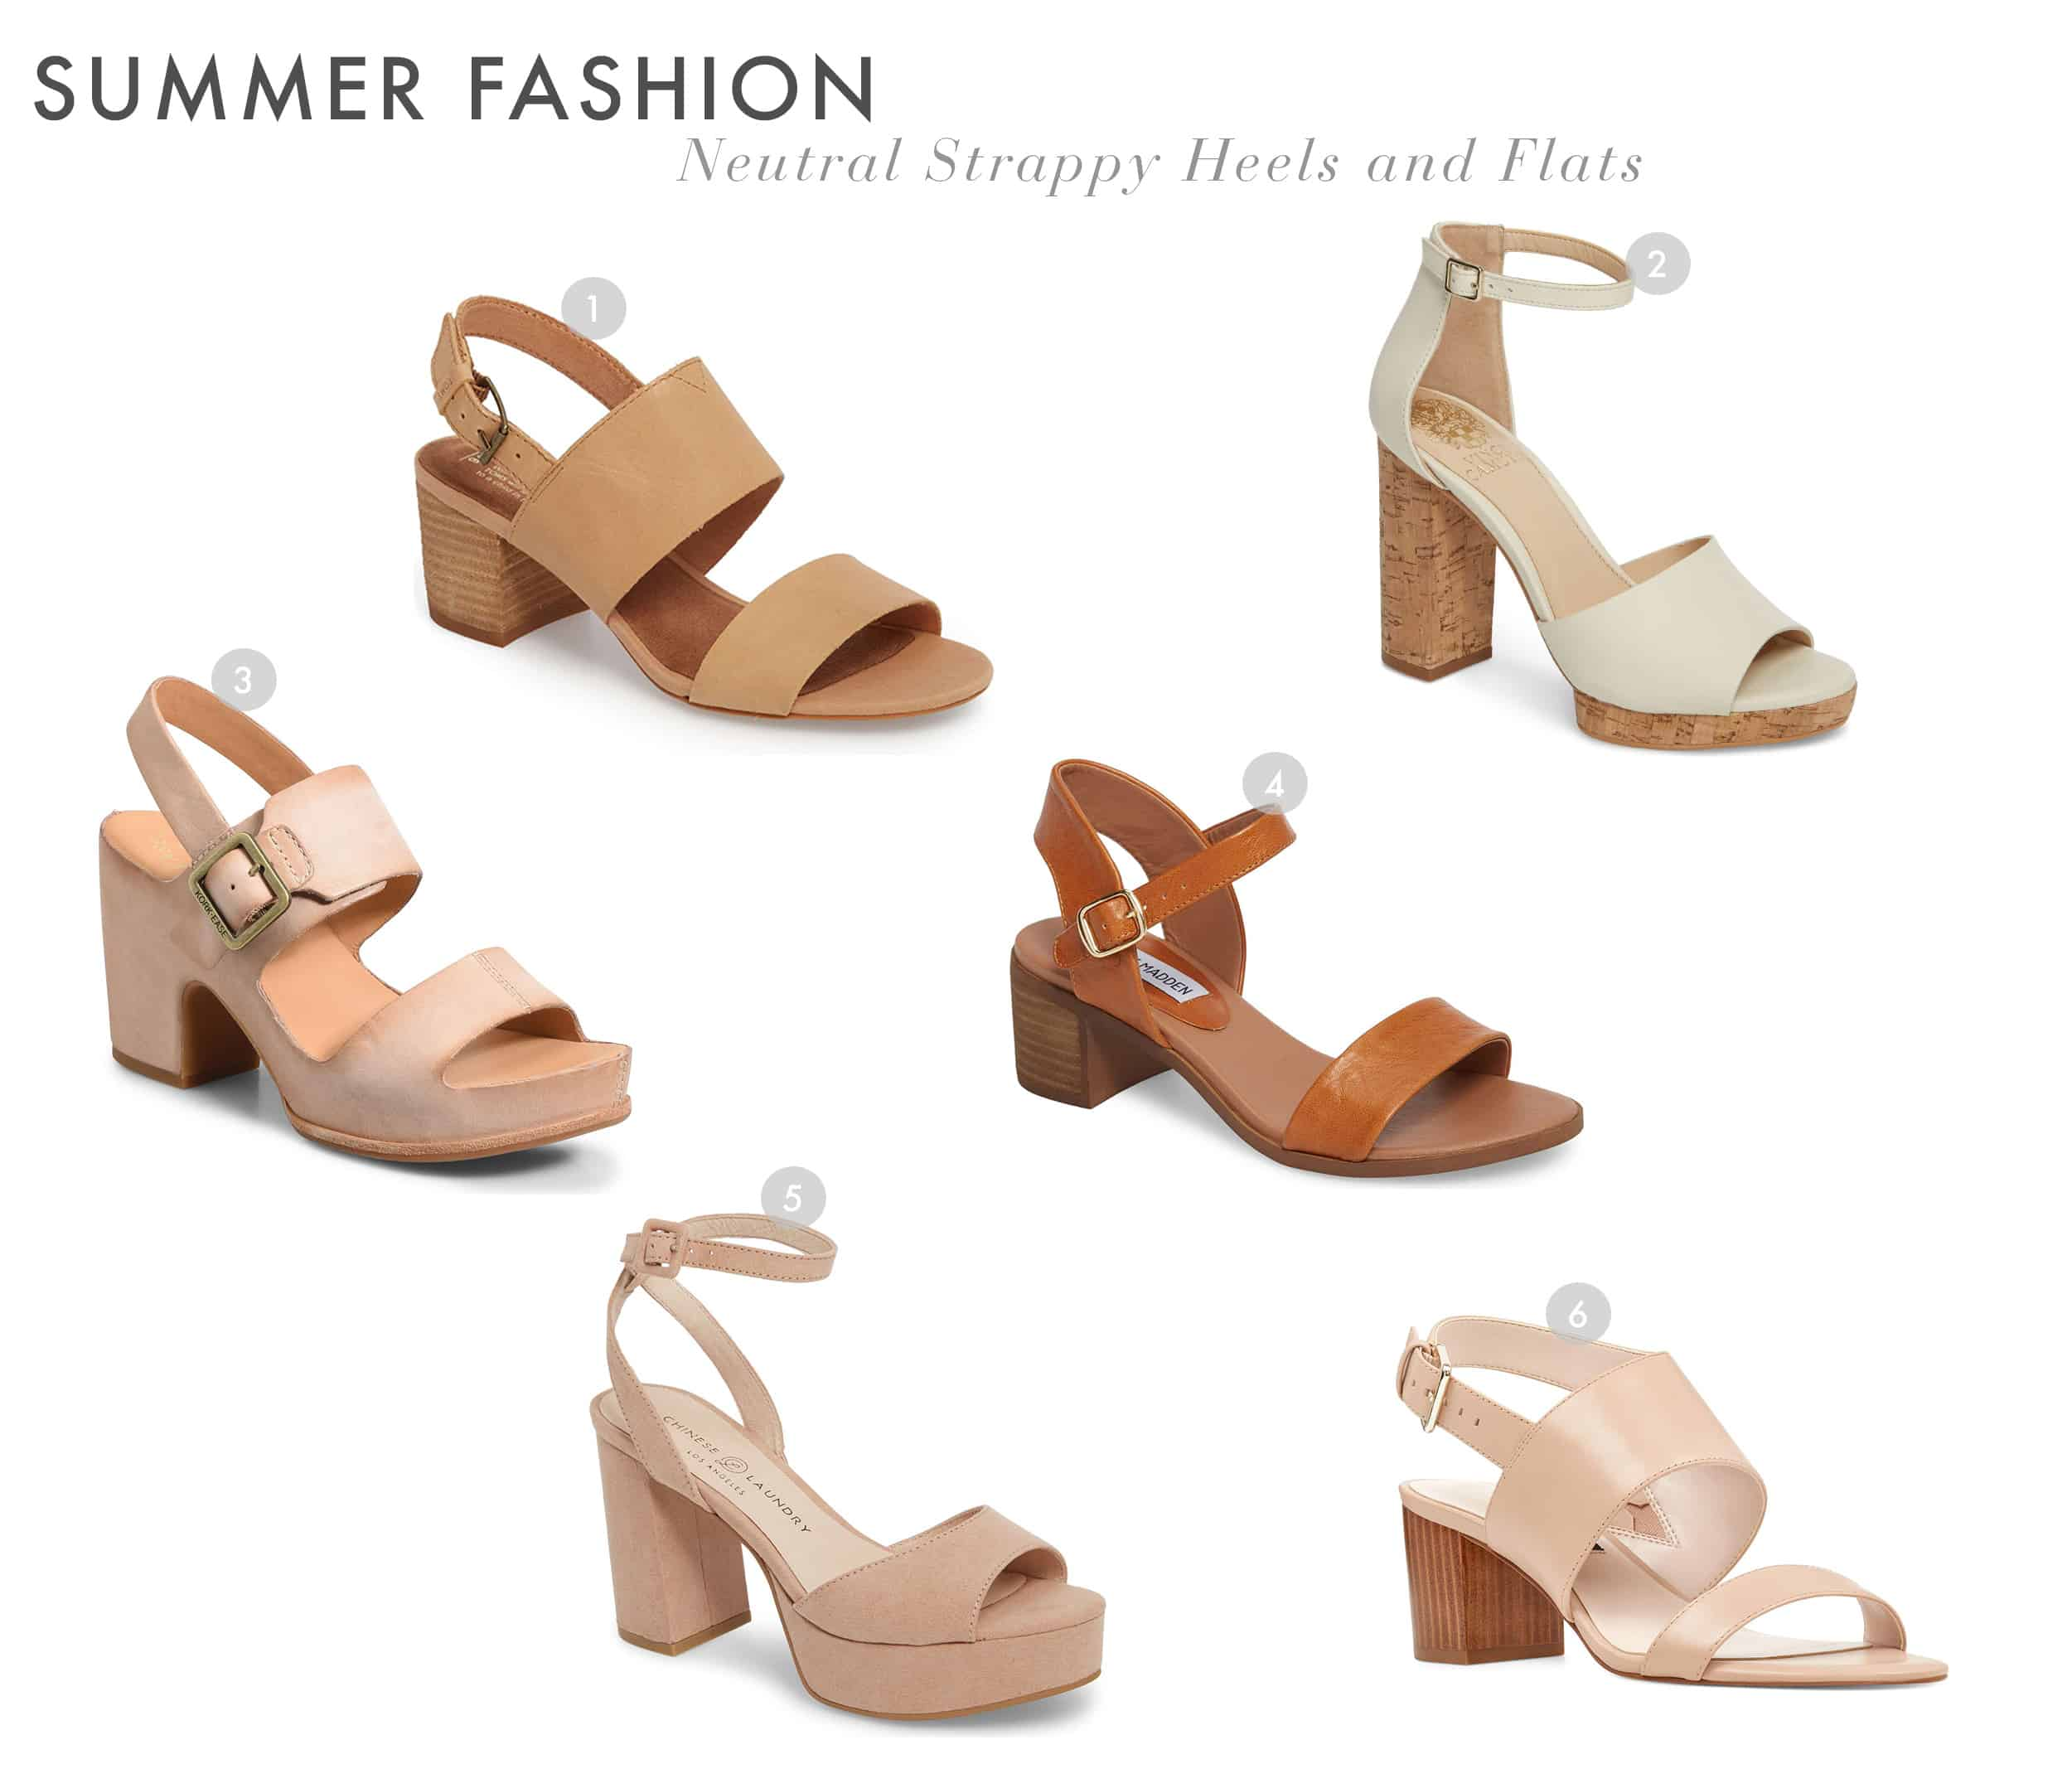 Emily Henderson Summer Fashion 2018 Neutral Shoes Strappy Heels And Flats 1